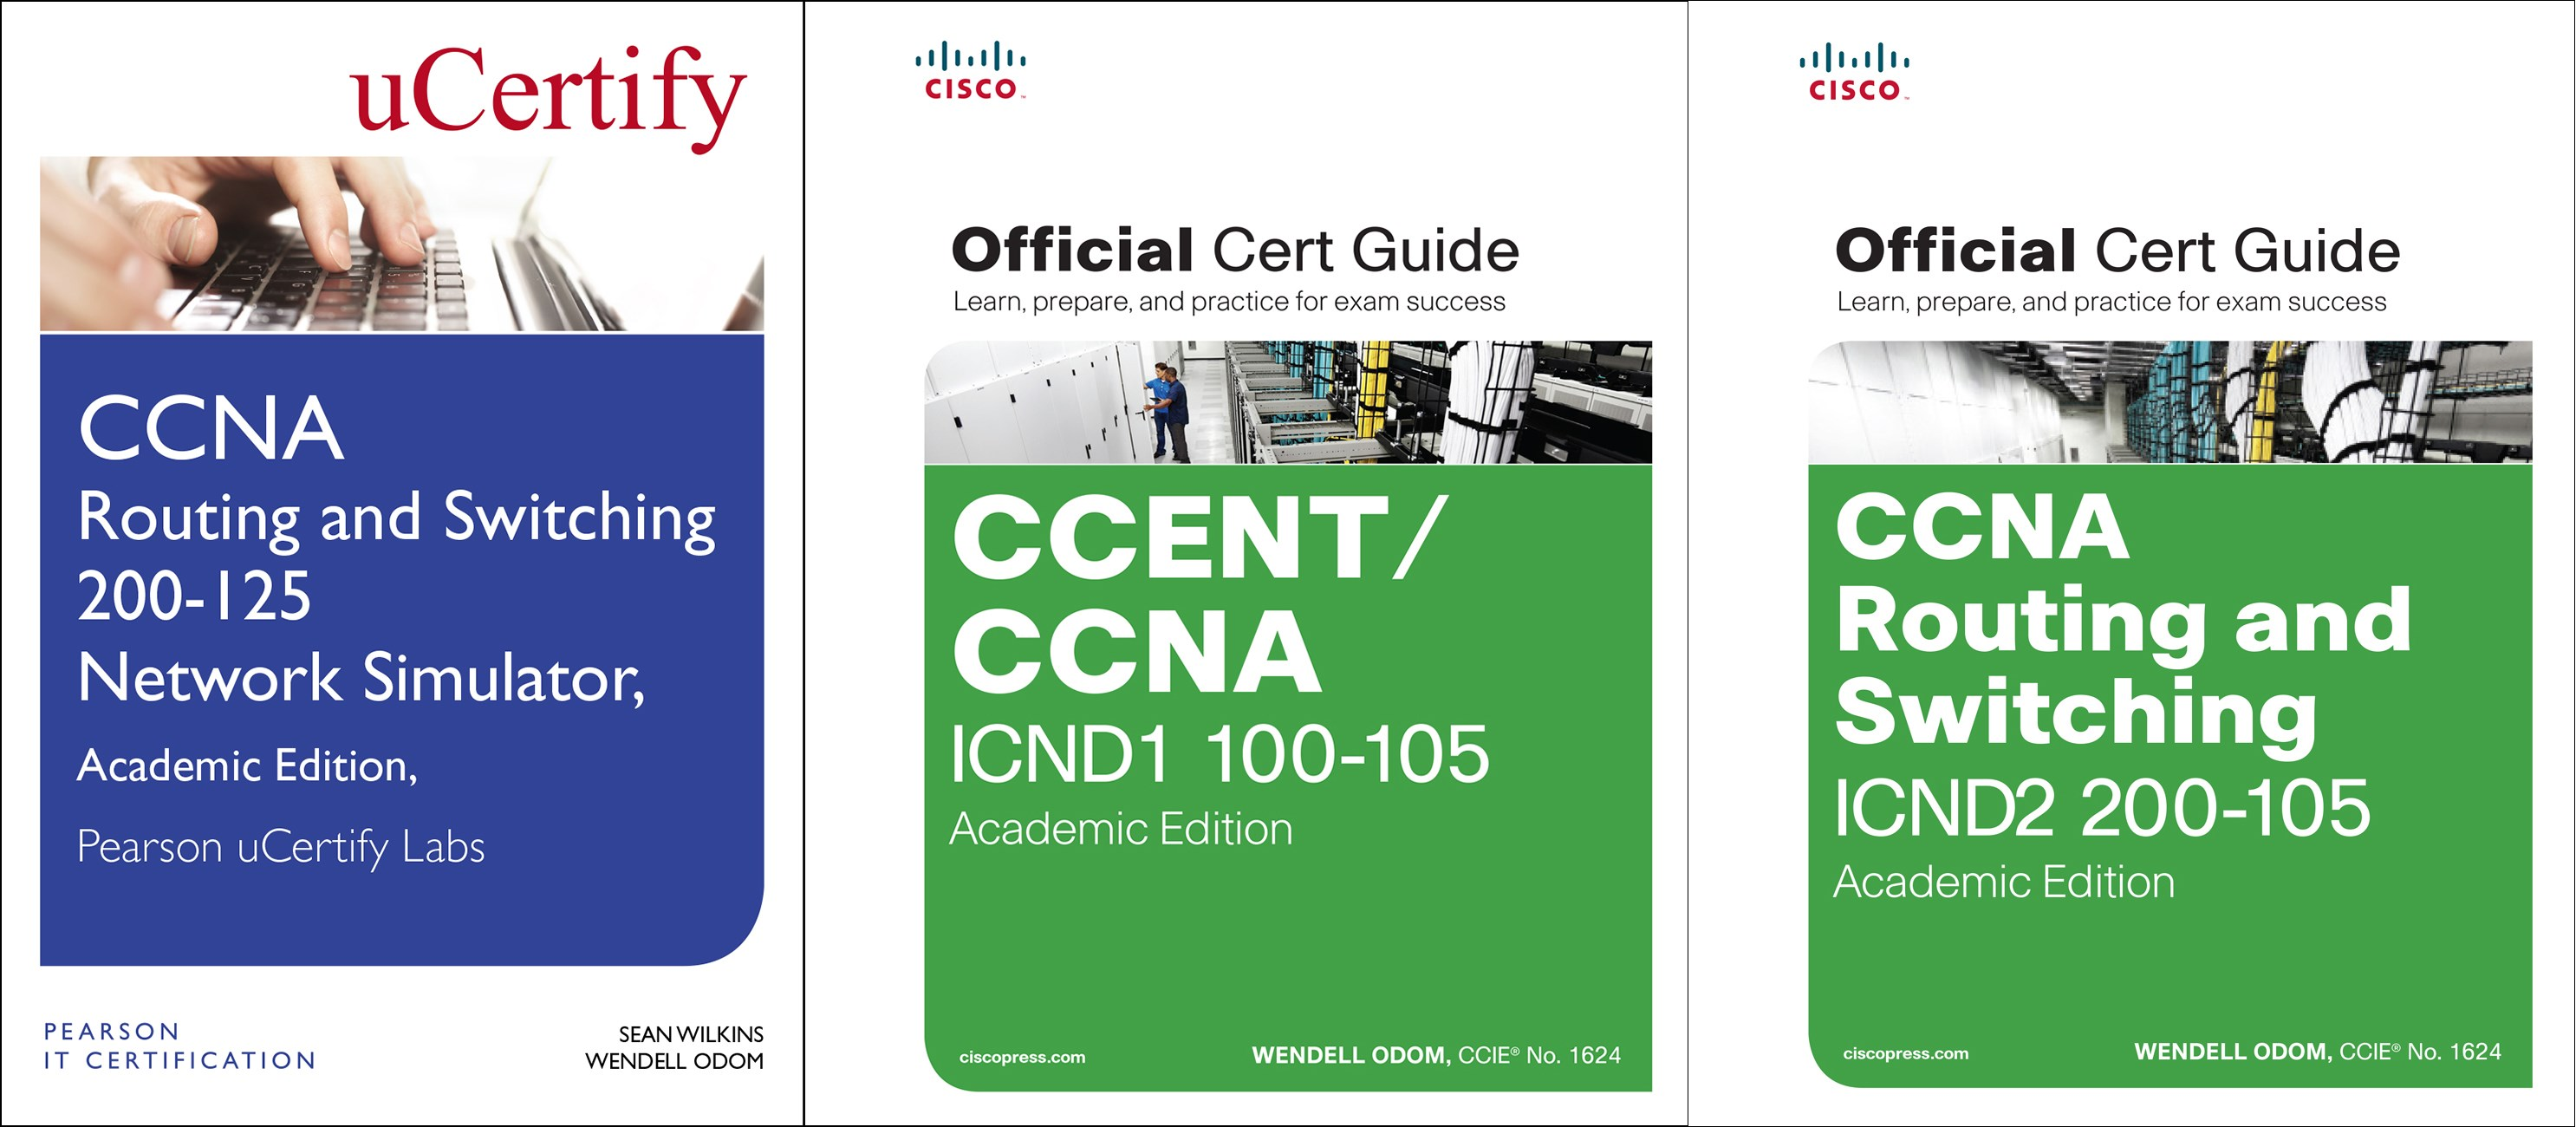 CCNA Routing and Switching 200-125 Official Cert Guide Library and